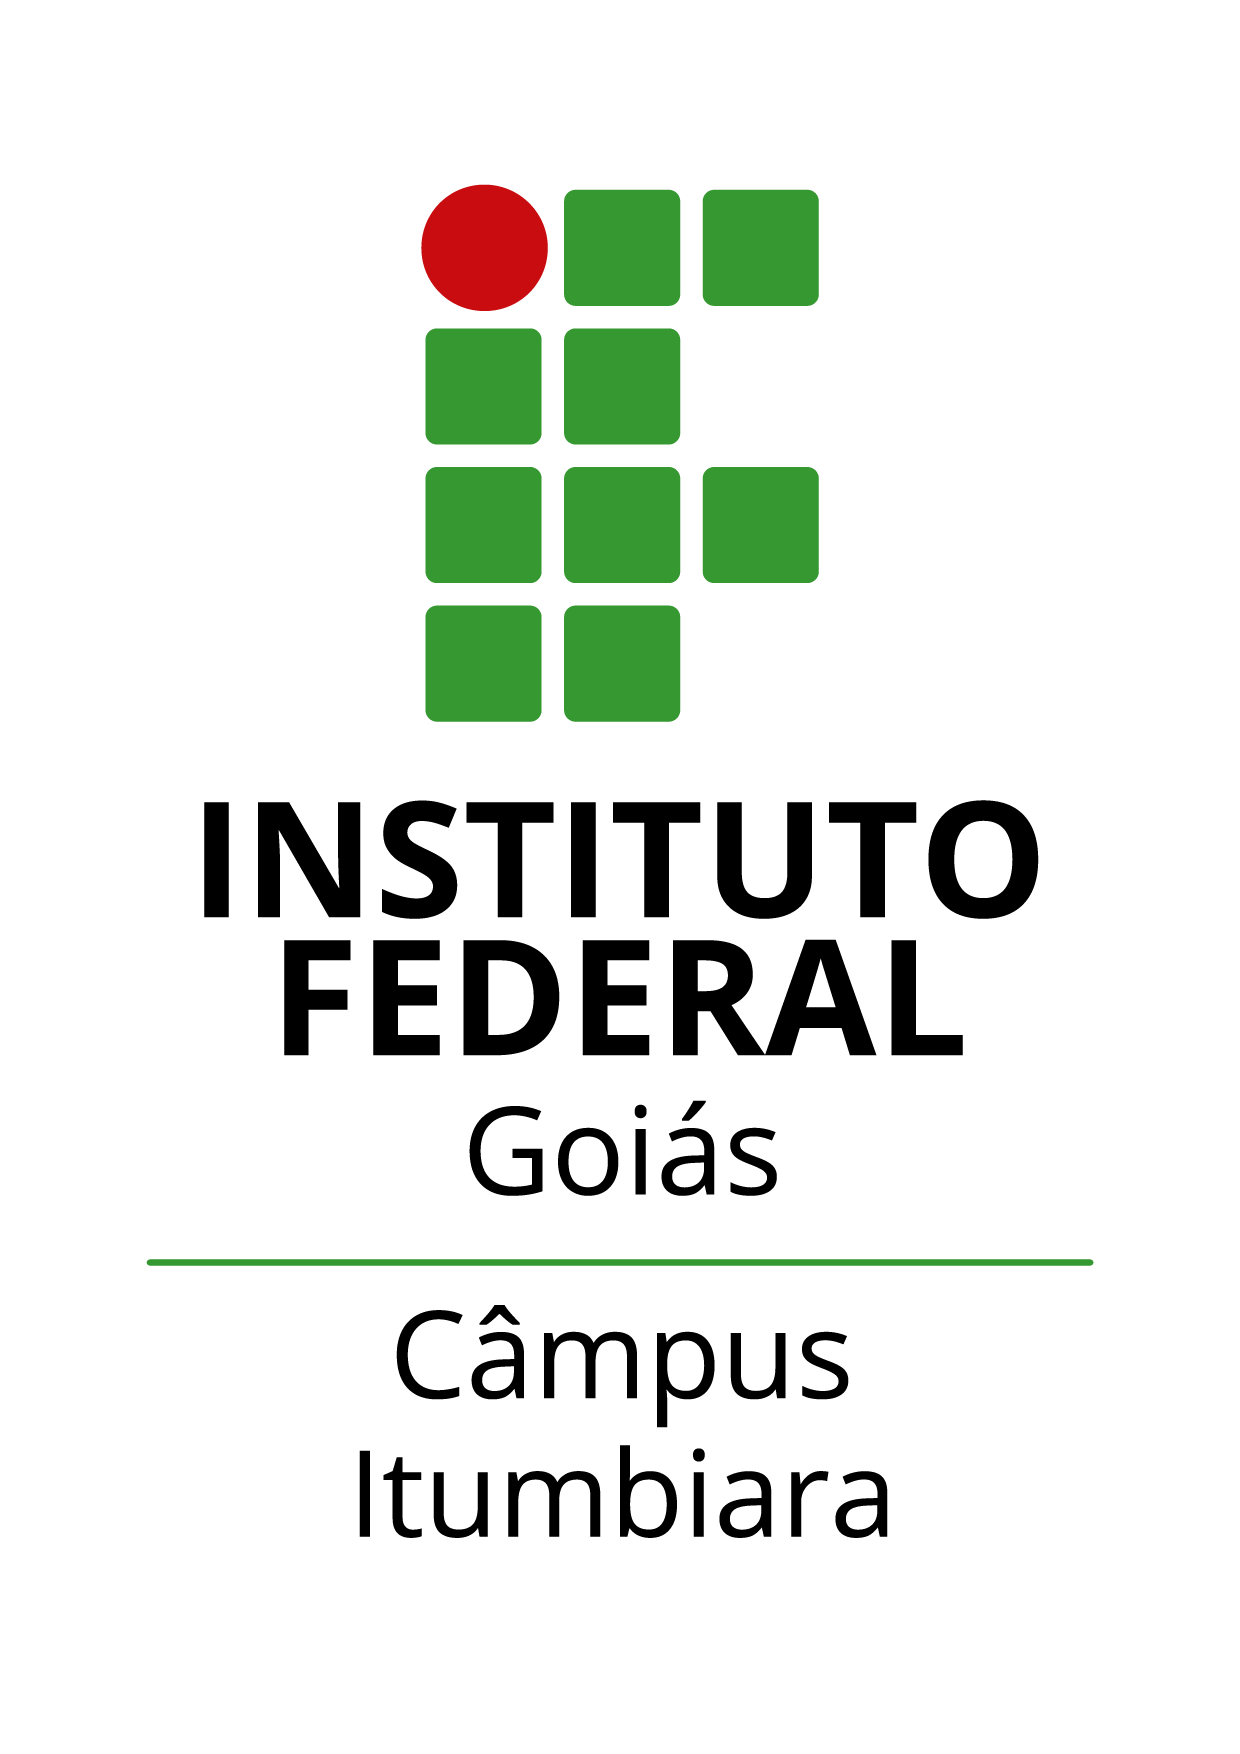 Logo do IFG - Câmpus Itumbiara